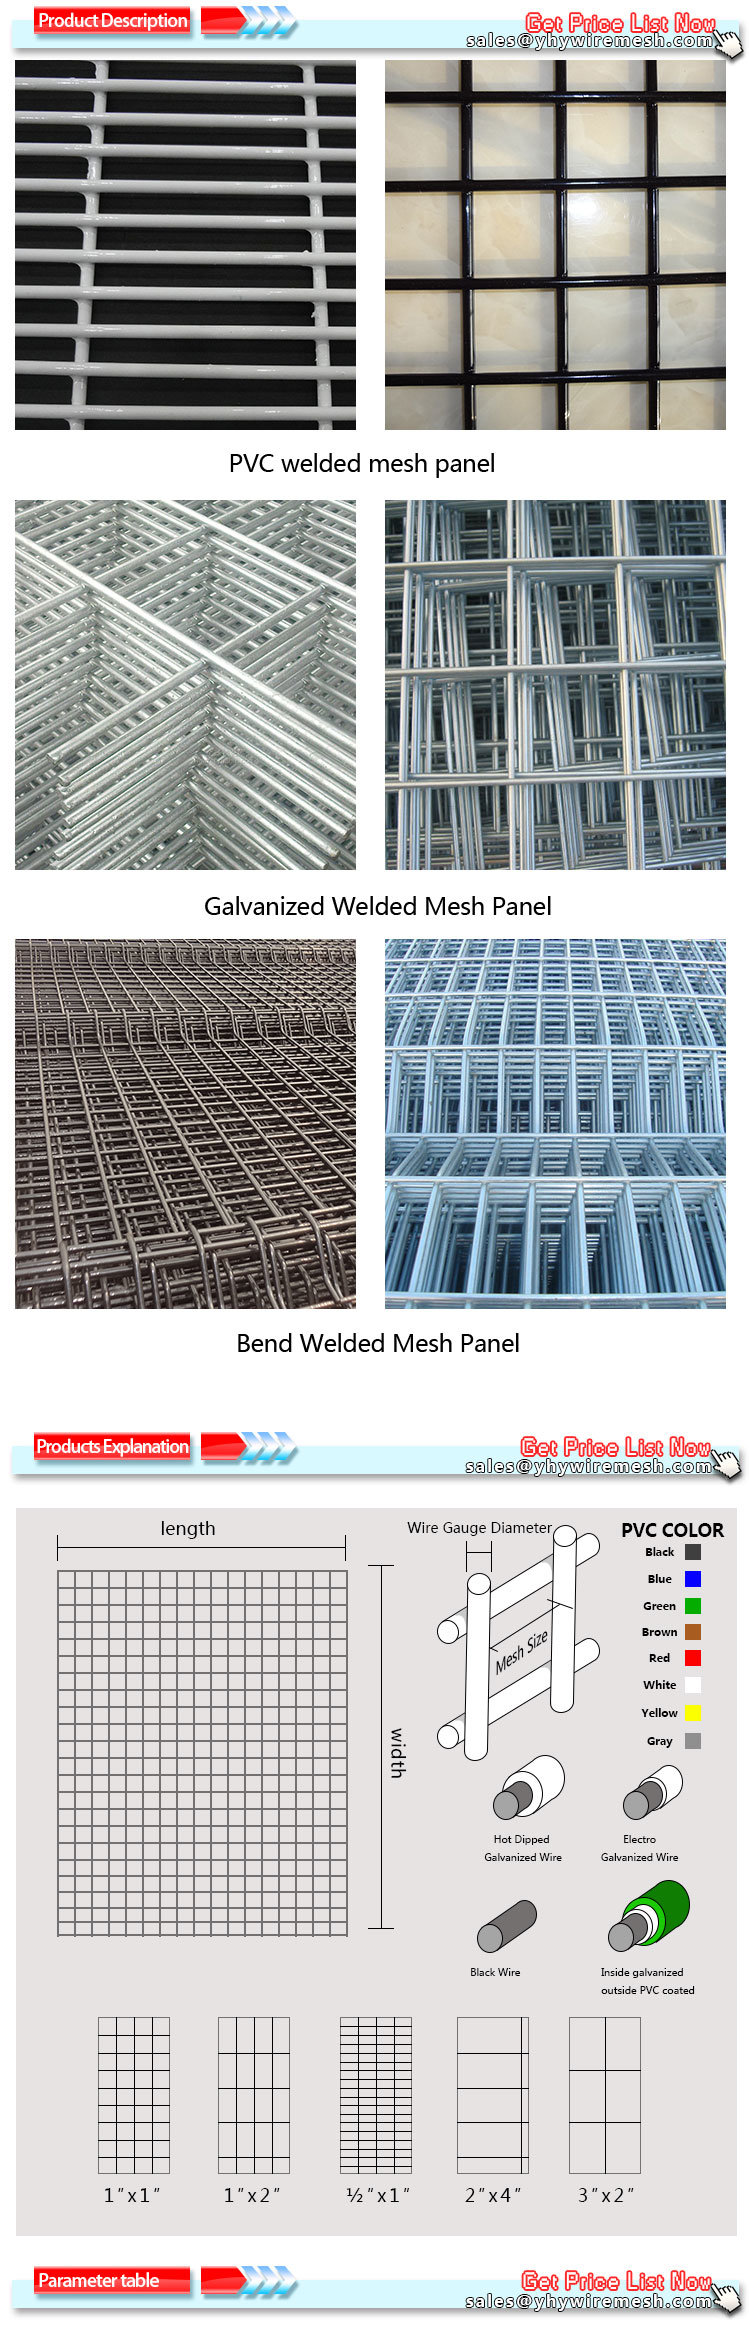 Magnificent Welded Wire Fabric Size Chart Gallery - Electrical ...